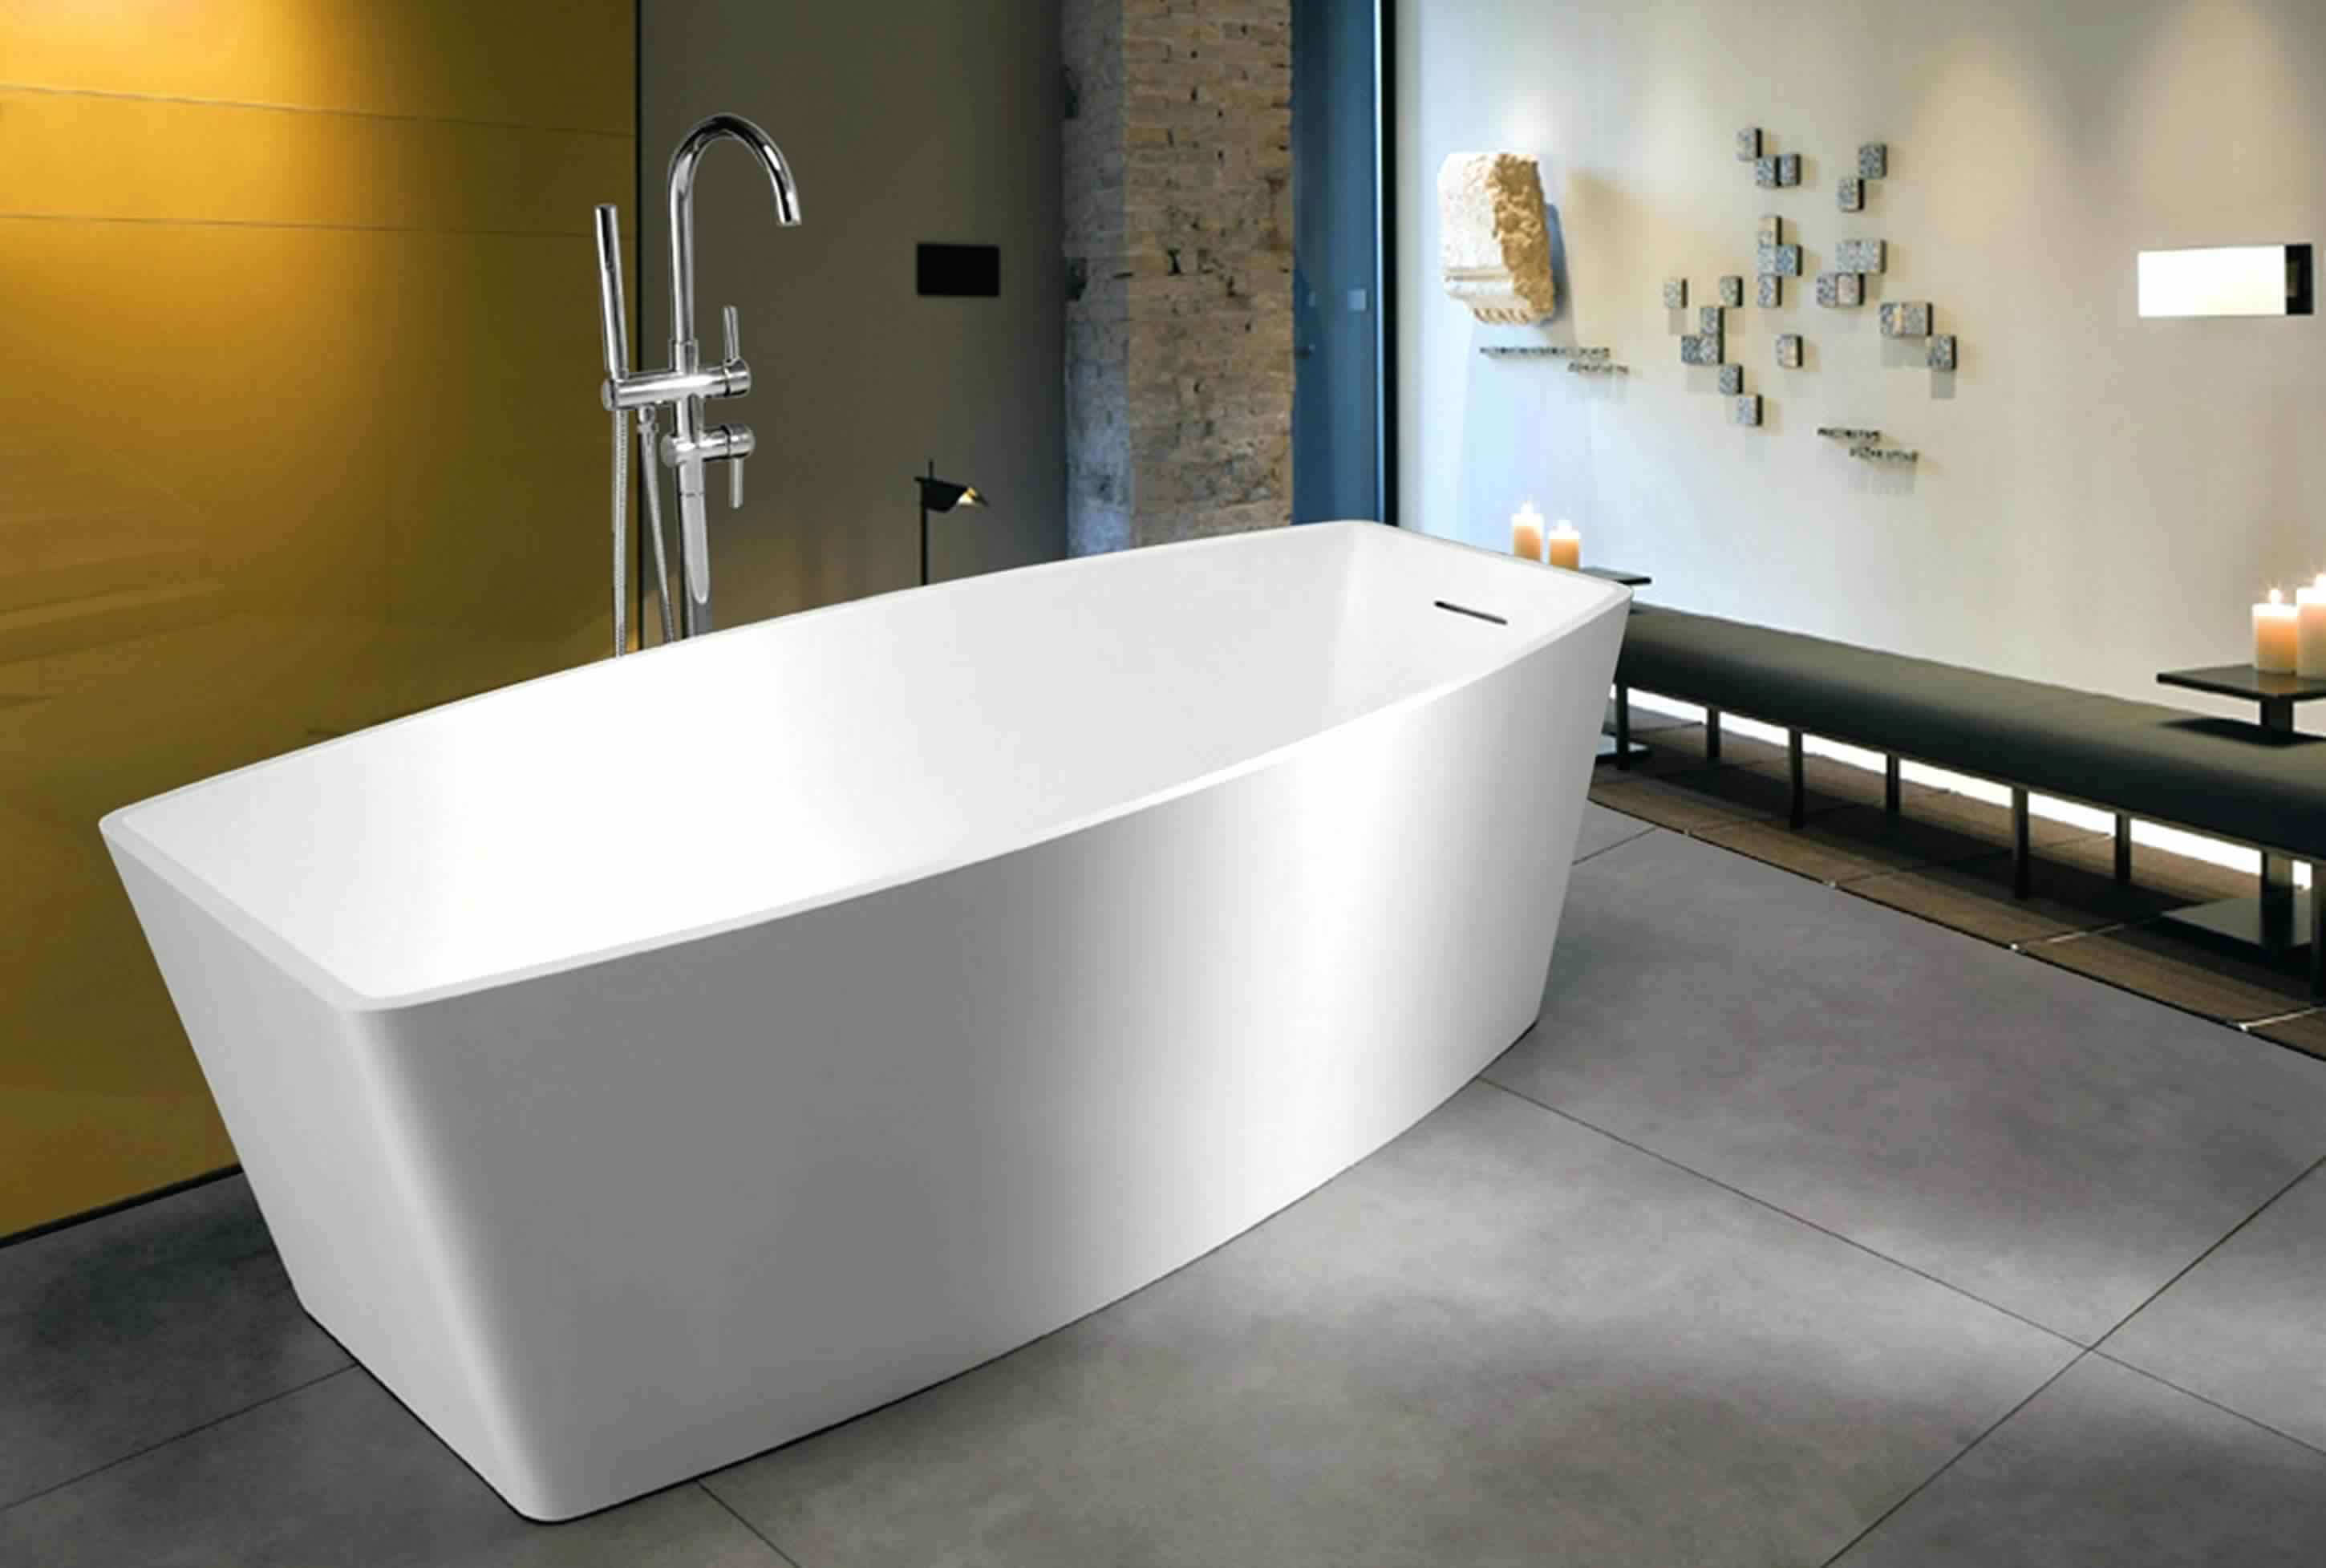 Smallest Bathtub Size-Developer bathtub